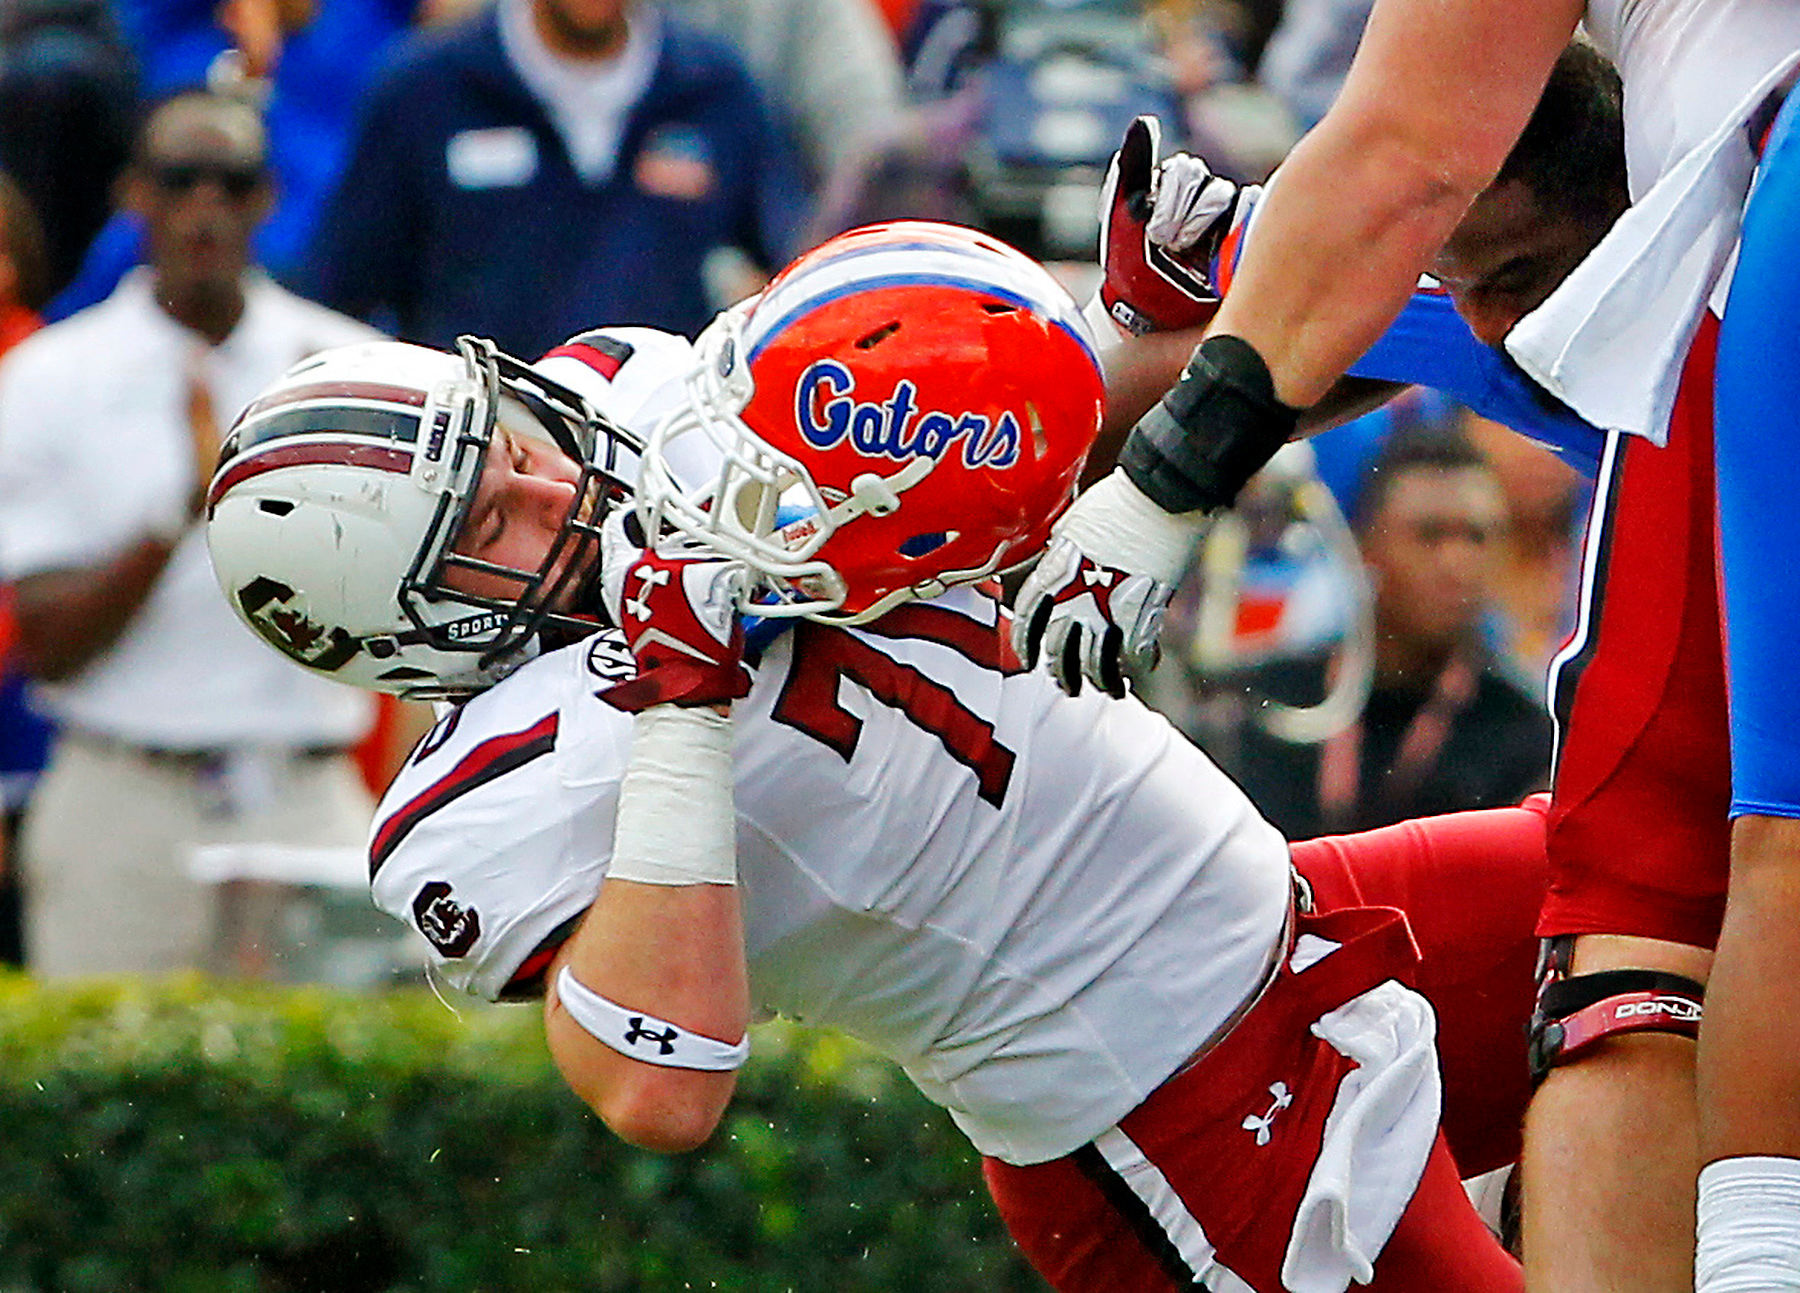 First Place | SportsGerry Melendez, The StateSouth Carolina Gamecocks center Alan Knott (70) rips the helmet off Florida Gators defensive lineman Darious Cummings (55) during a fourth quarter play at Ben Hill Griffin Stadium, in Gainesville, FL, Saturday, November 15, 2014.